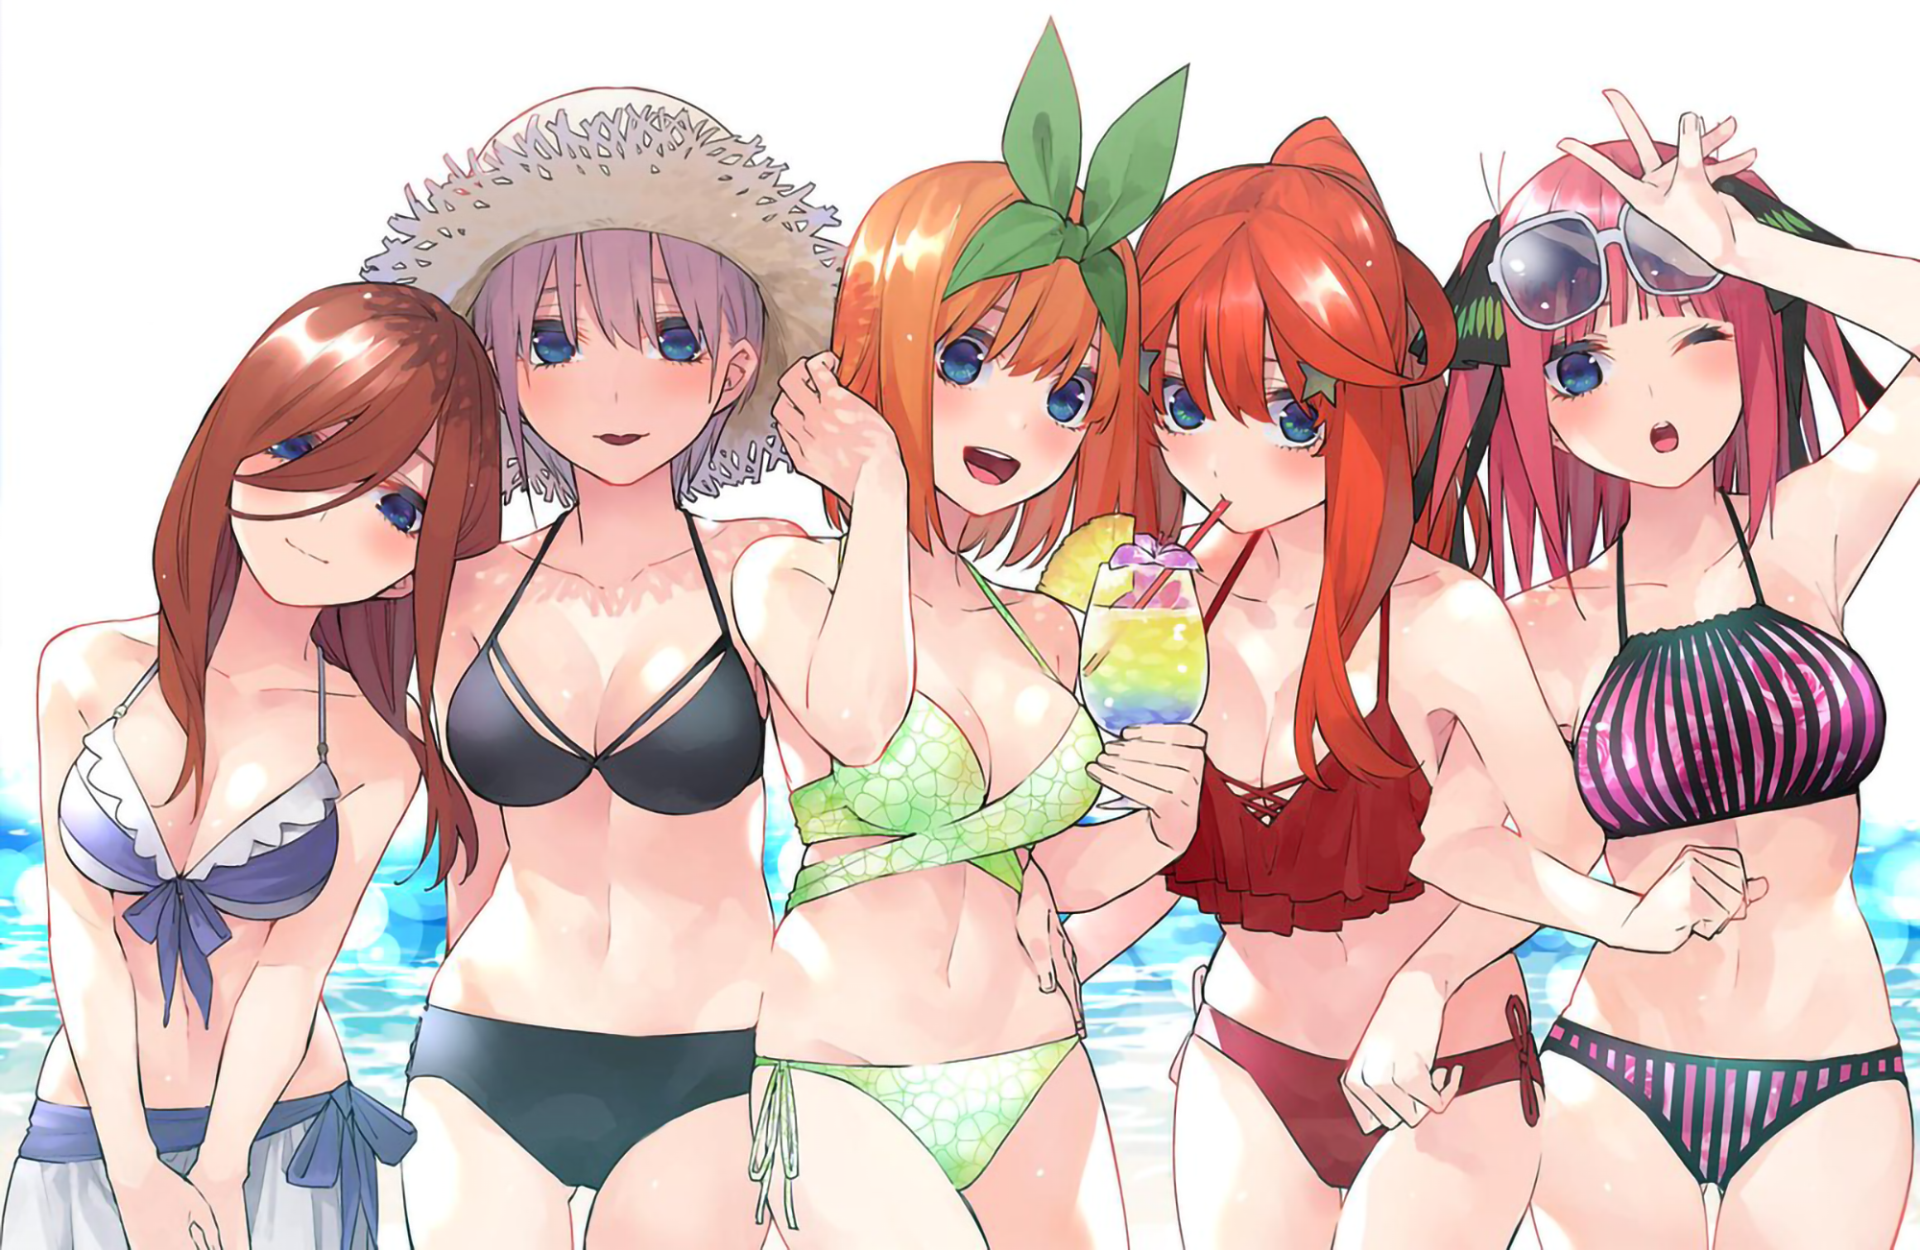 Quintessential Quintuplets Who Is The Bride?